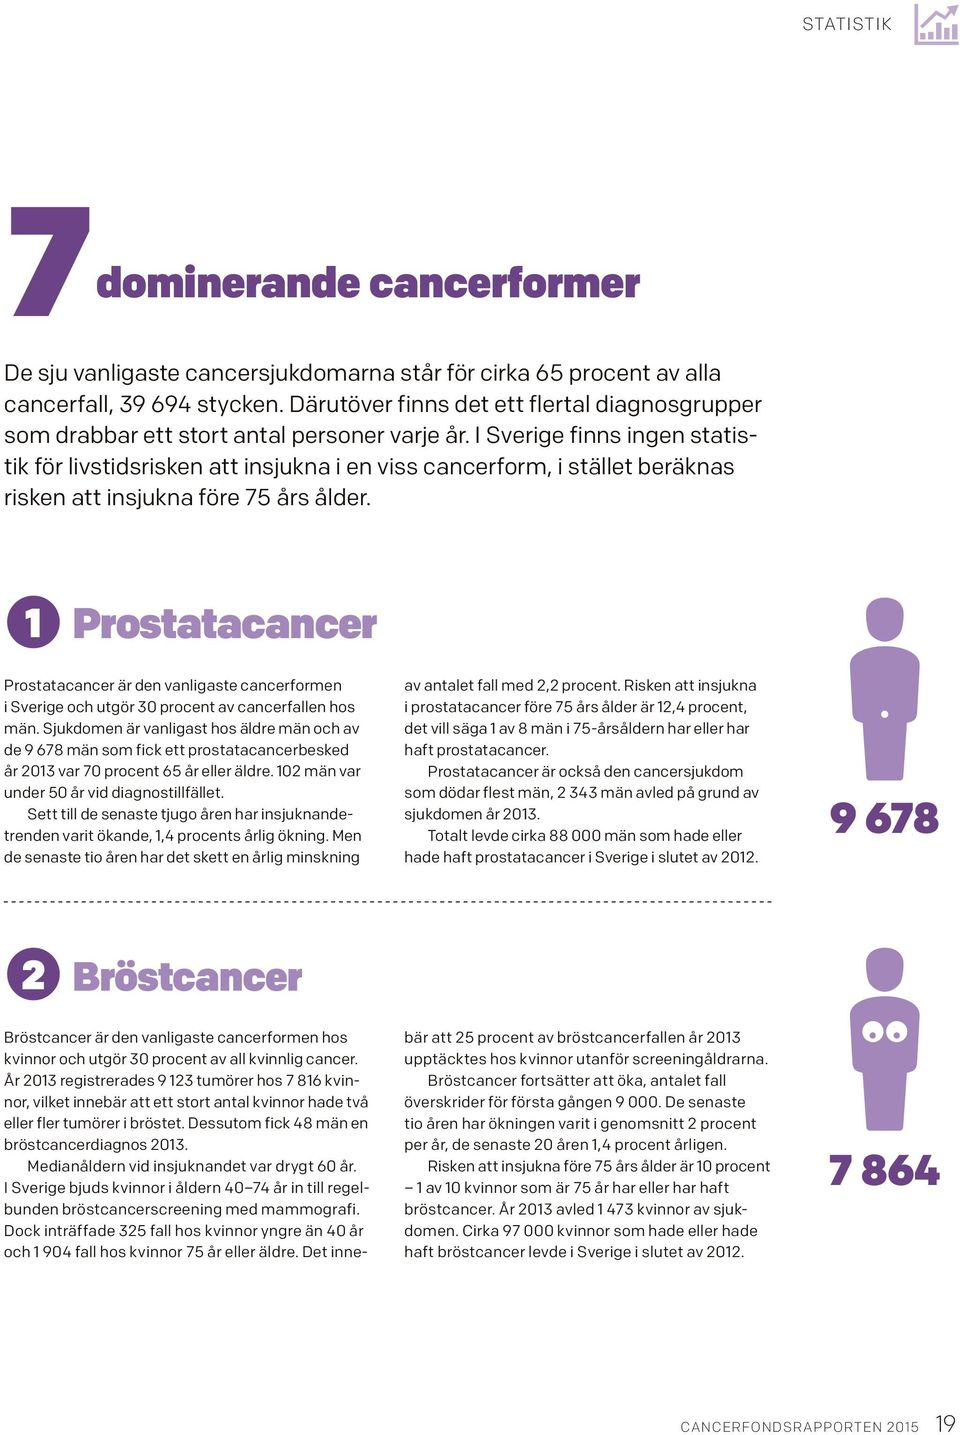 Brostcancer nast vanligaste cancerformen 2